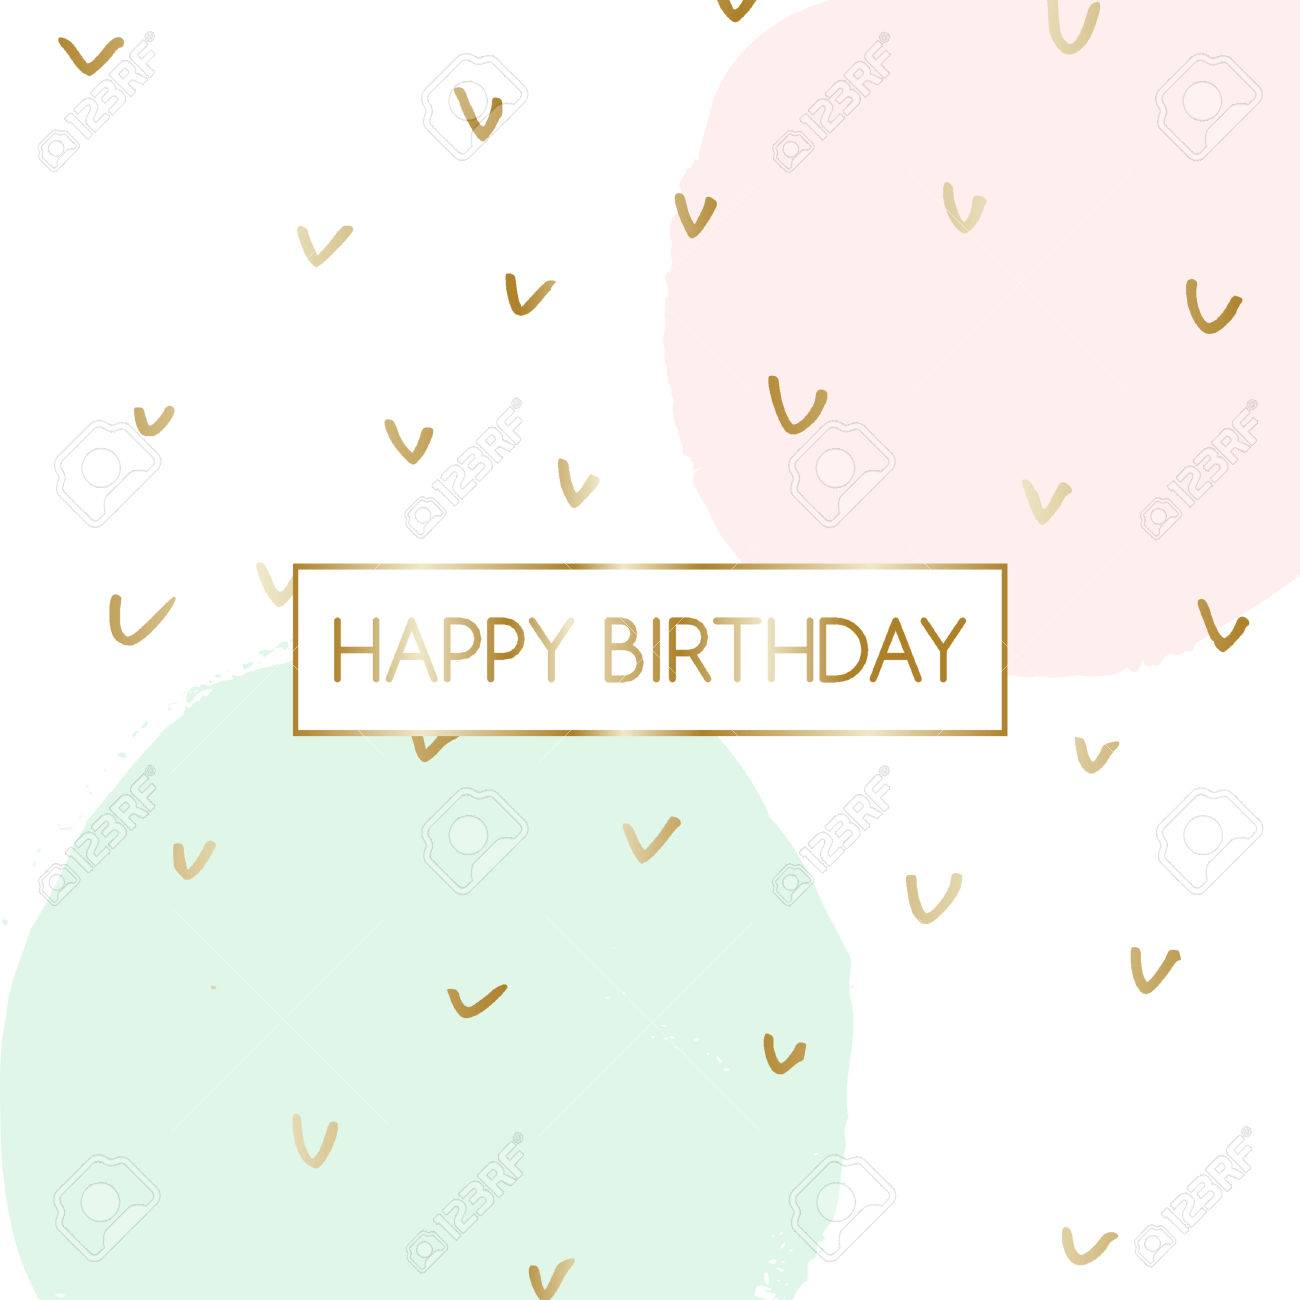 Birthday Greeting Card Design With Text Happy Birthday In Gold Royalty Free Cliparts Vectors And Stock Illustration Image 75349519